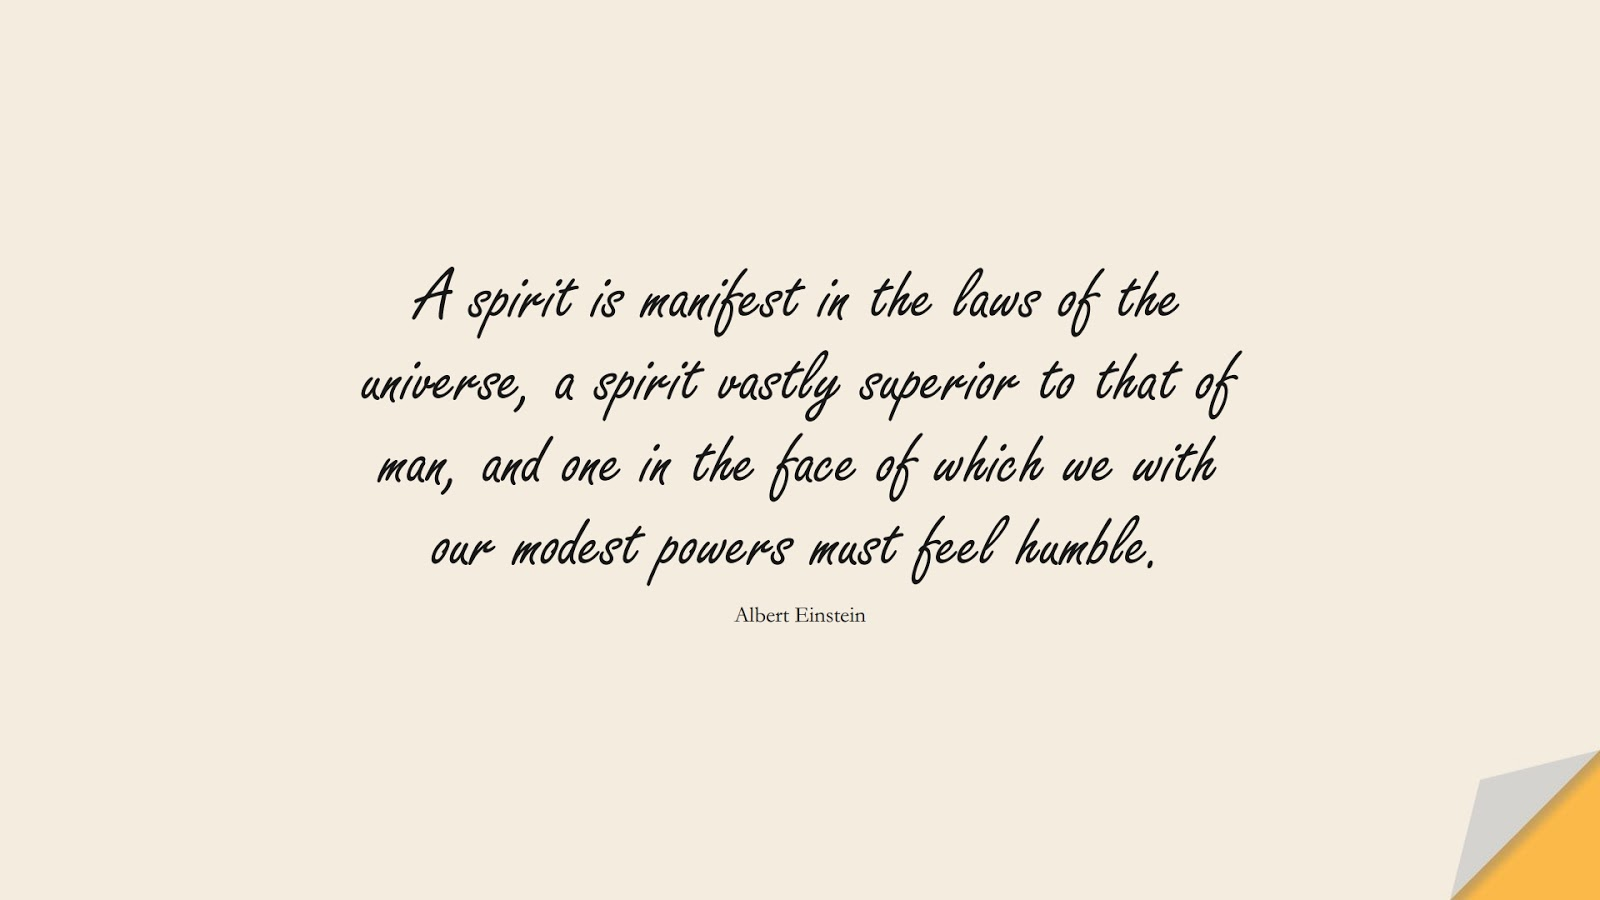 A spirit is manifest in the laws of the universe, a spirit vastly superior to that of man, and one in the face of which we with our modest powers must feel humble. (Albert Einstein);  #AlbertEnsteinQuotes